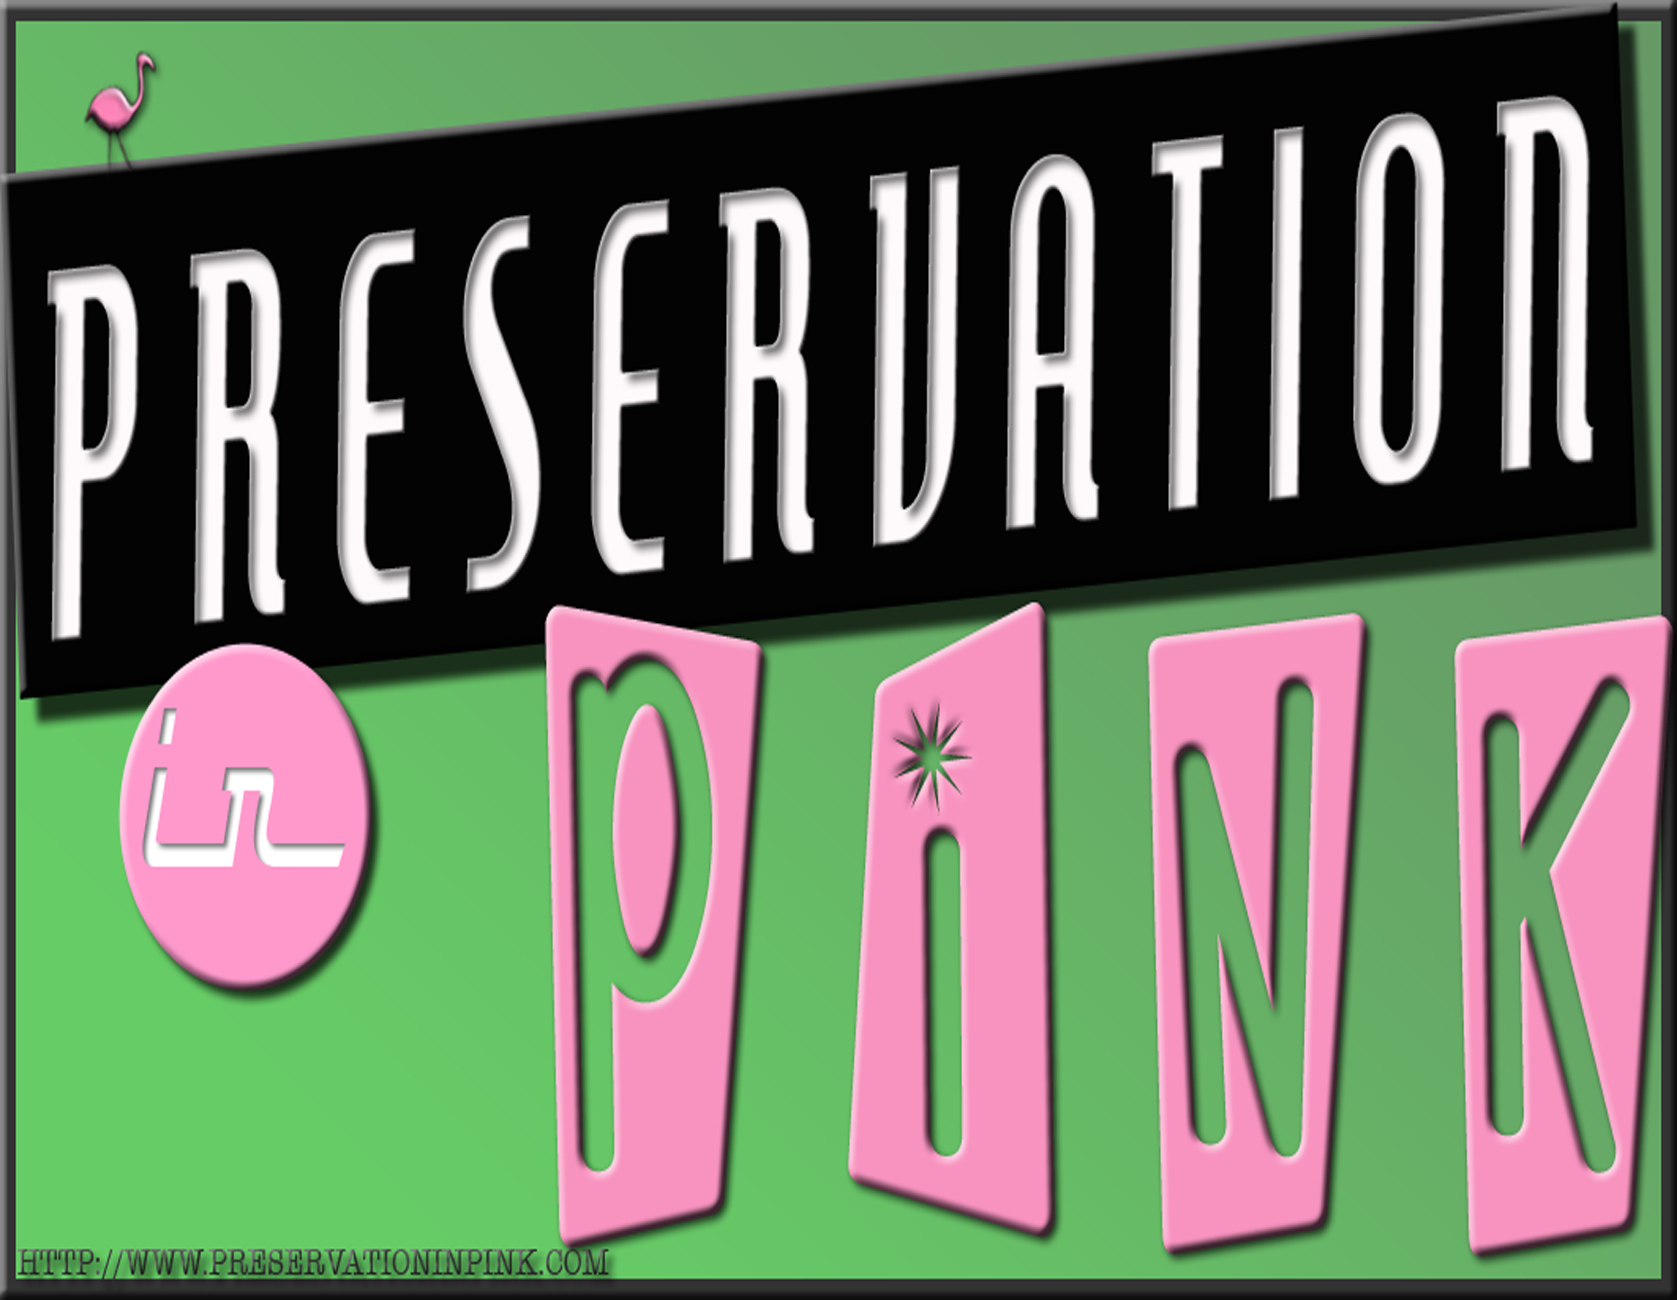 Preservation in Pink magnet design (also postcard and business card).